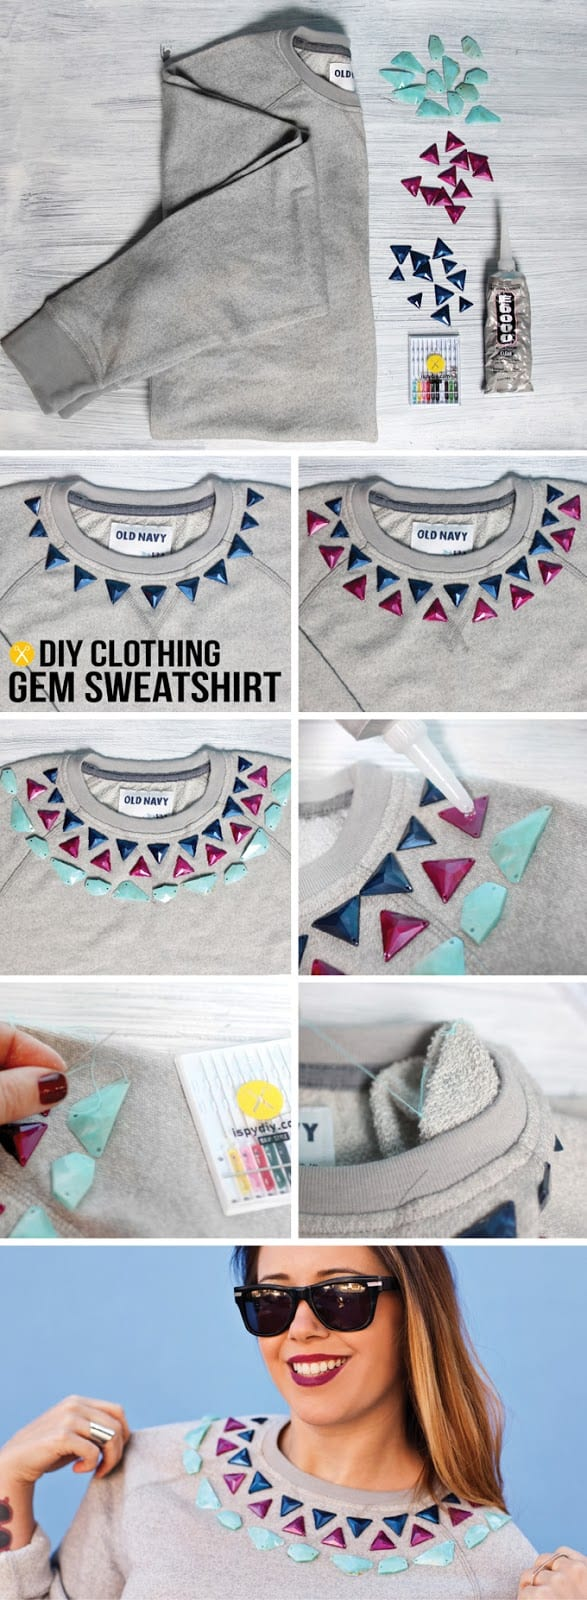 DIY-–-GEM-EMBELLISHED-SWEATSHIRT 50 Most Useful DIY Winter Fashion Ideas with Tutorials